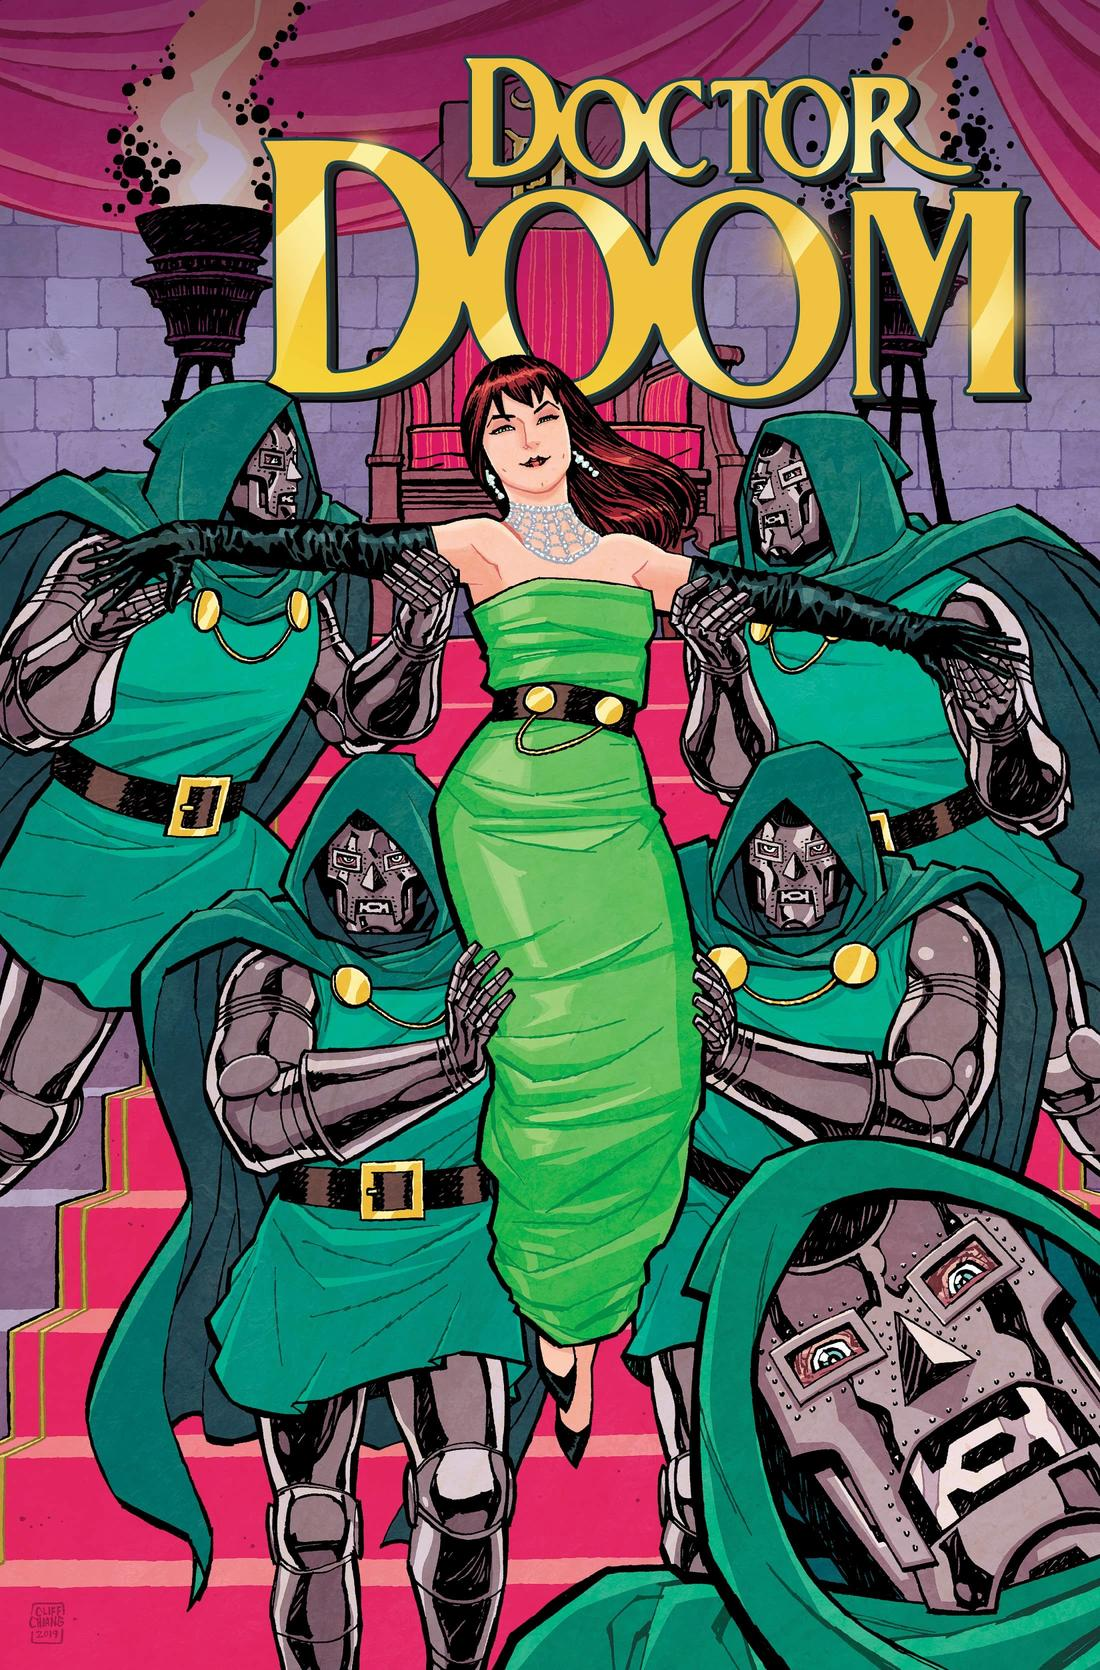 DOCTOR DOOM #1 variant art by Cliff Chiang